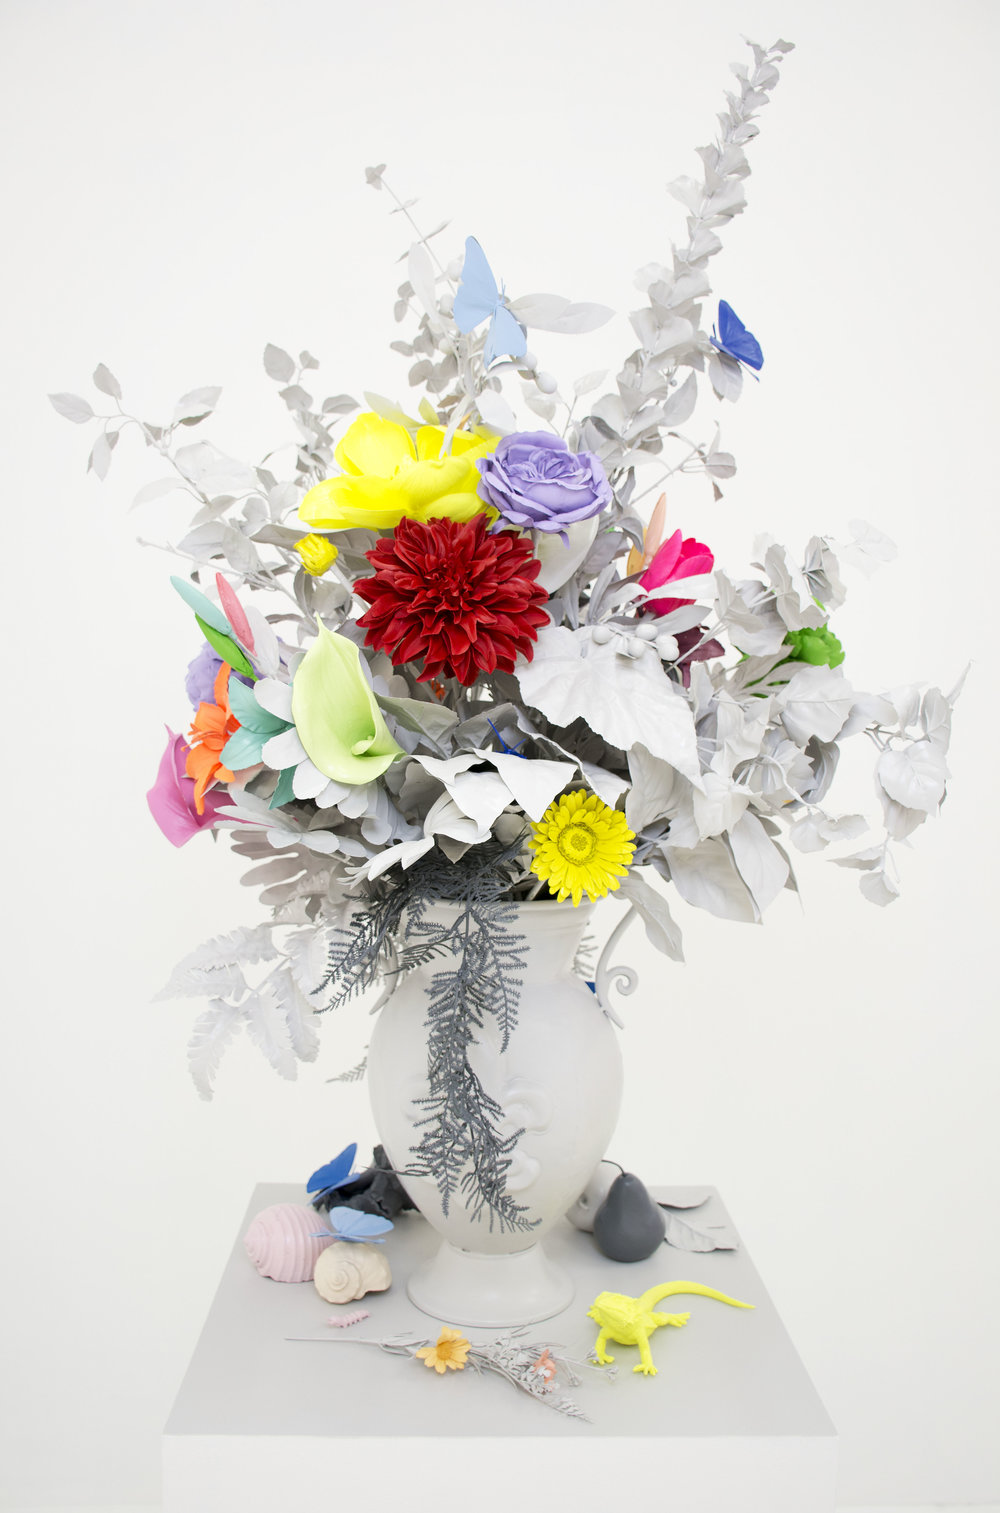 STA-2017-0005 Untitled (Floral Still Life Sculpture)_2017_50 x 40 x 40 inches_B.jpg